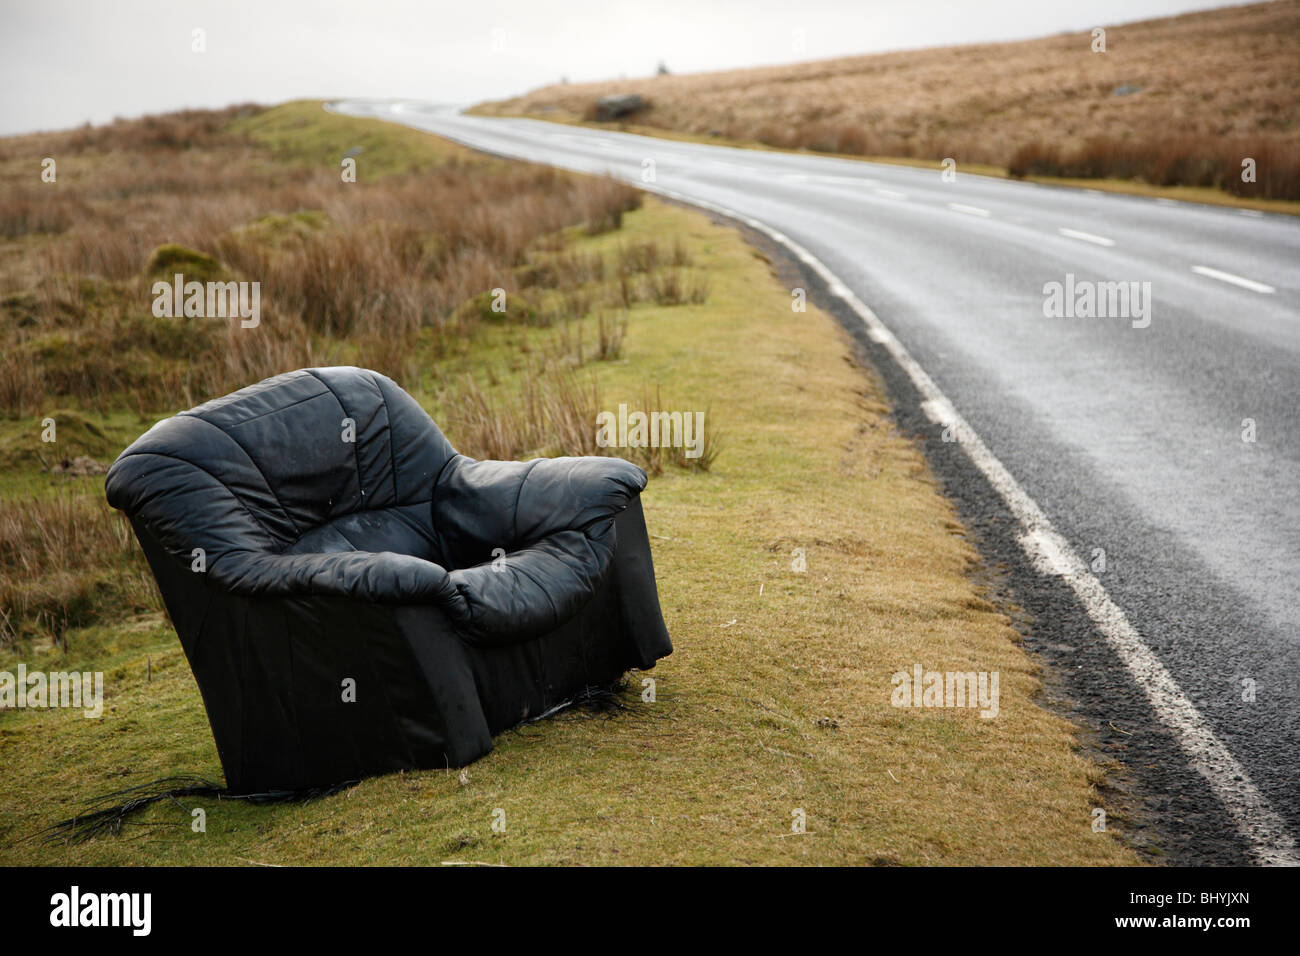 Abandonned Armchair, Brecon Beacons, Wales, UK - Stock Image